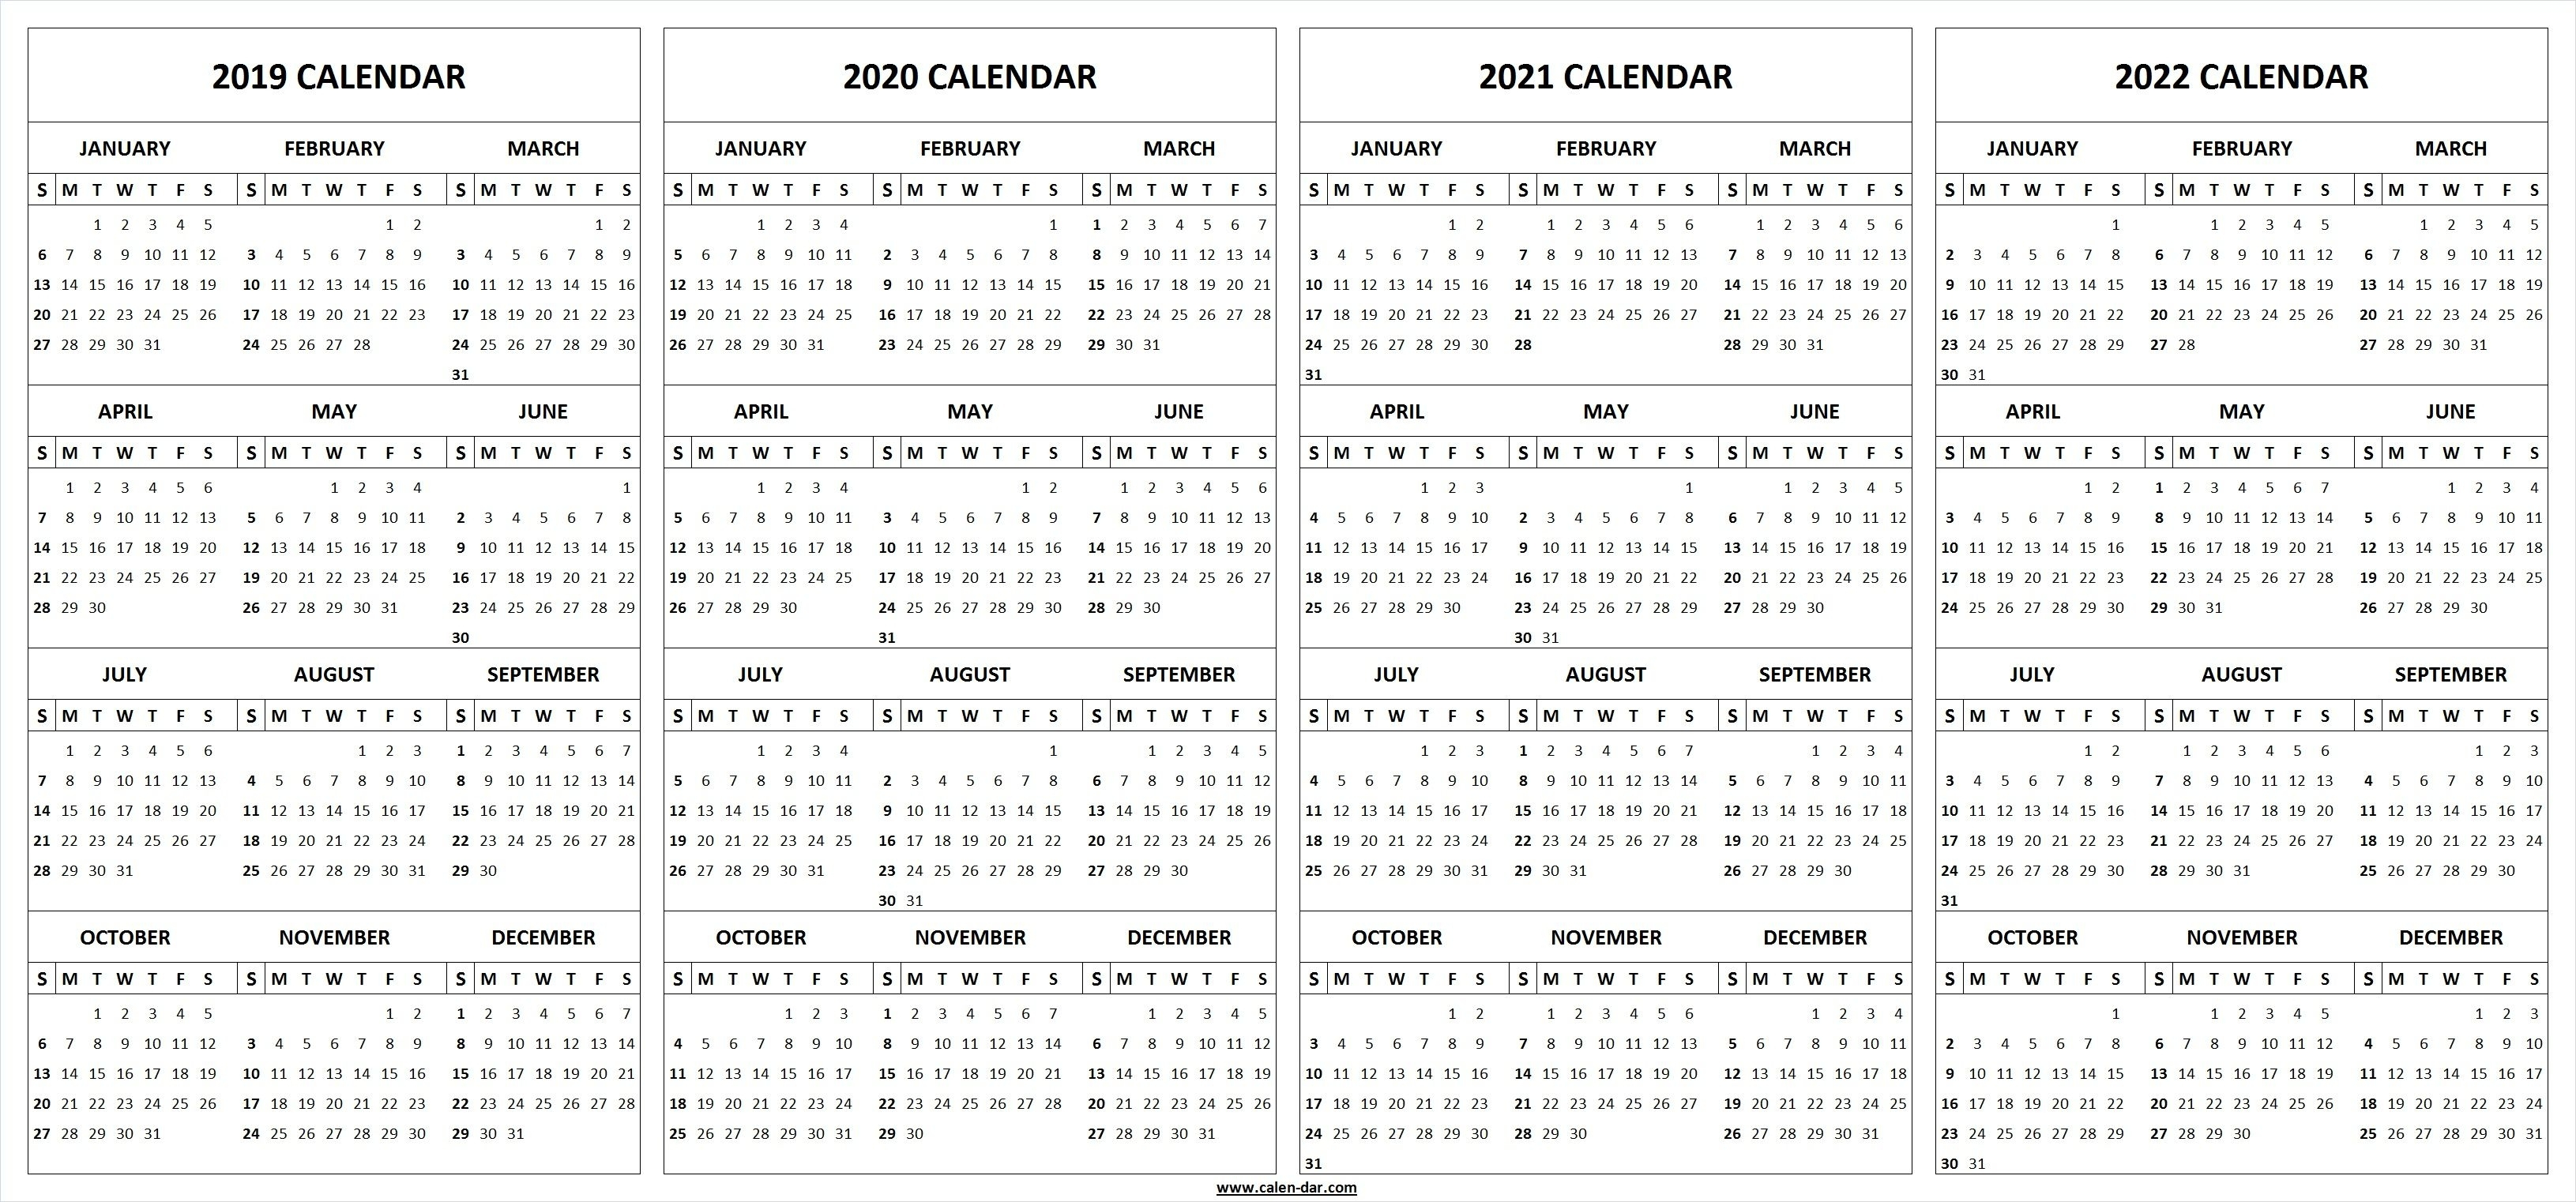 2019 2020 2021 2022 Calendar Blank Template | Calendar | 2021 with regard to Calendars 2019 2020 2021